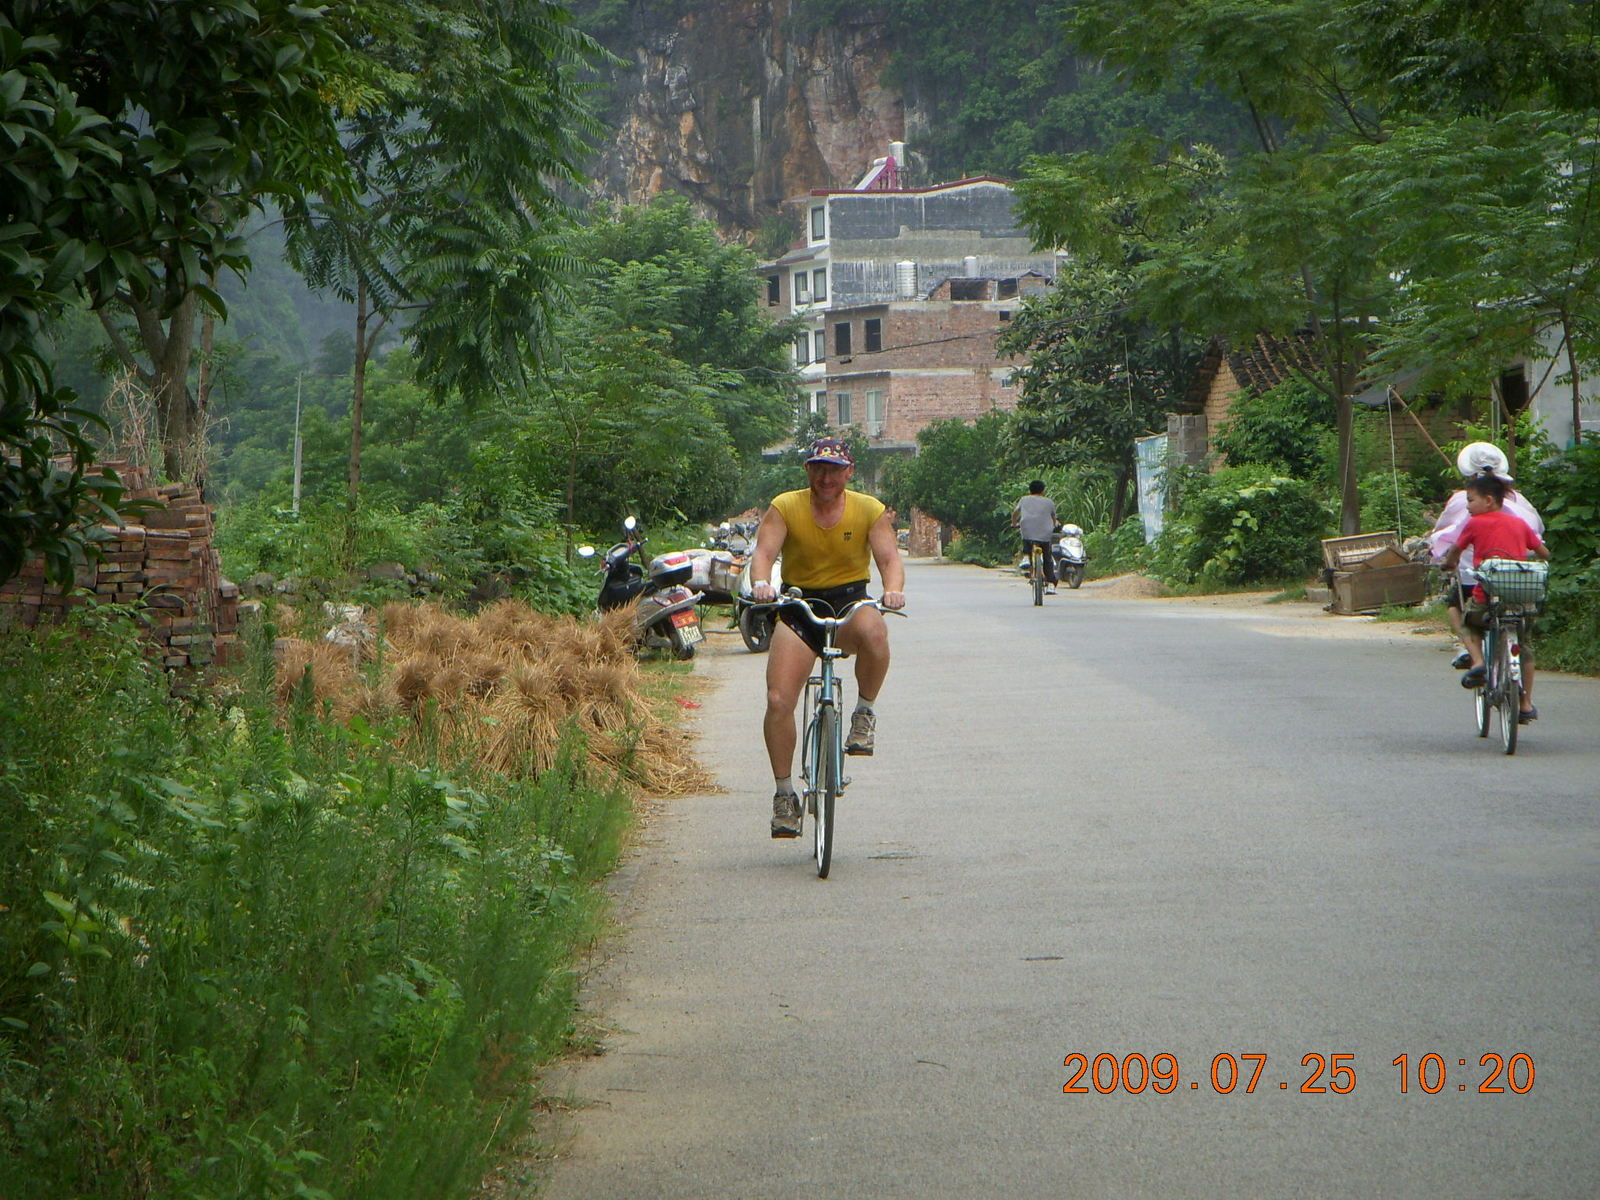 China eclipse - Yangshuo bicycle ride - Adam riding